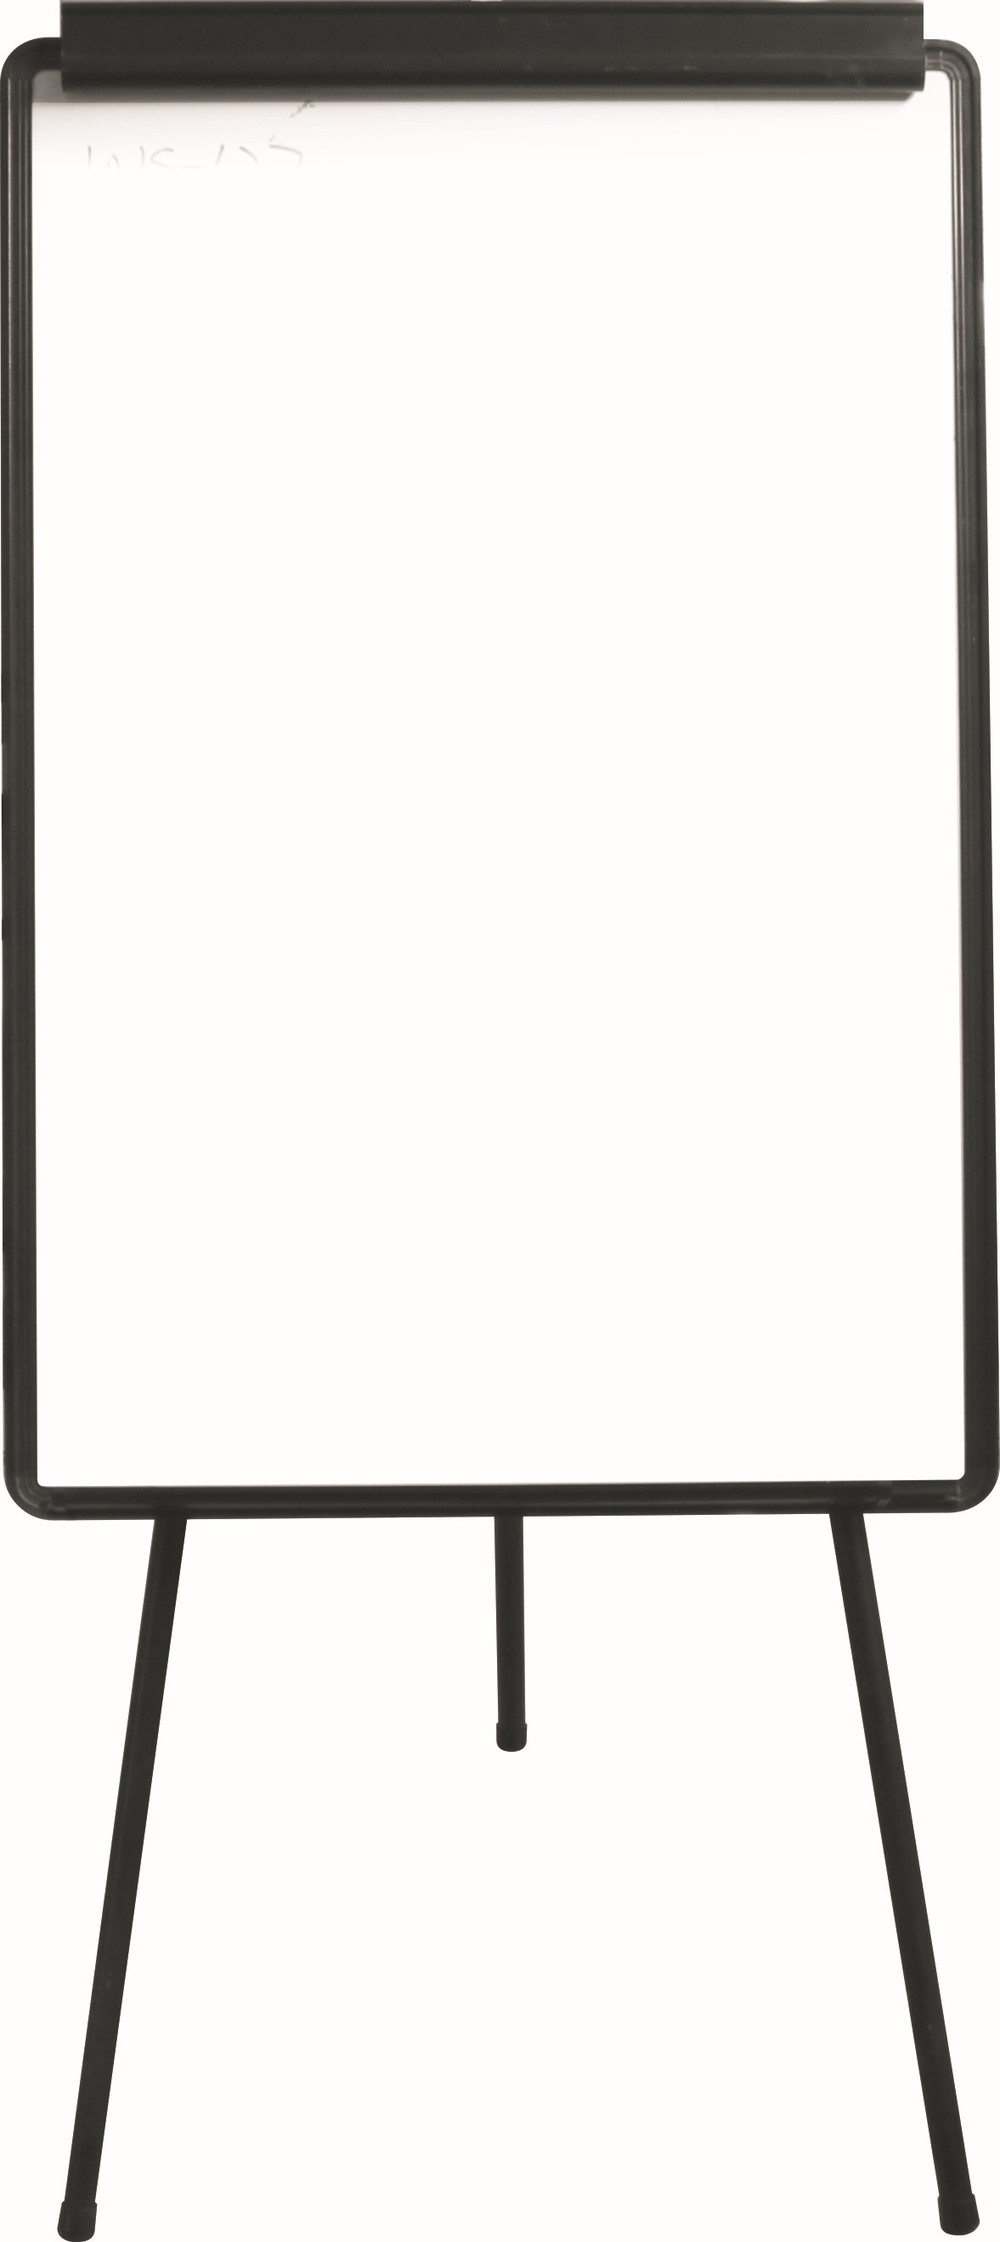 Whiteboard Stand,Easel,Ld